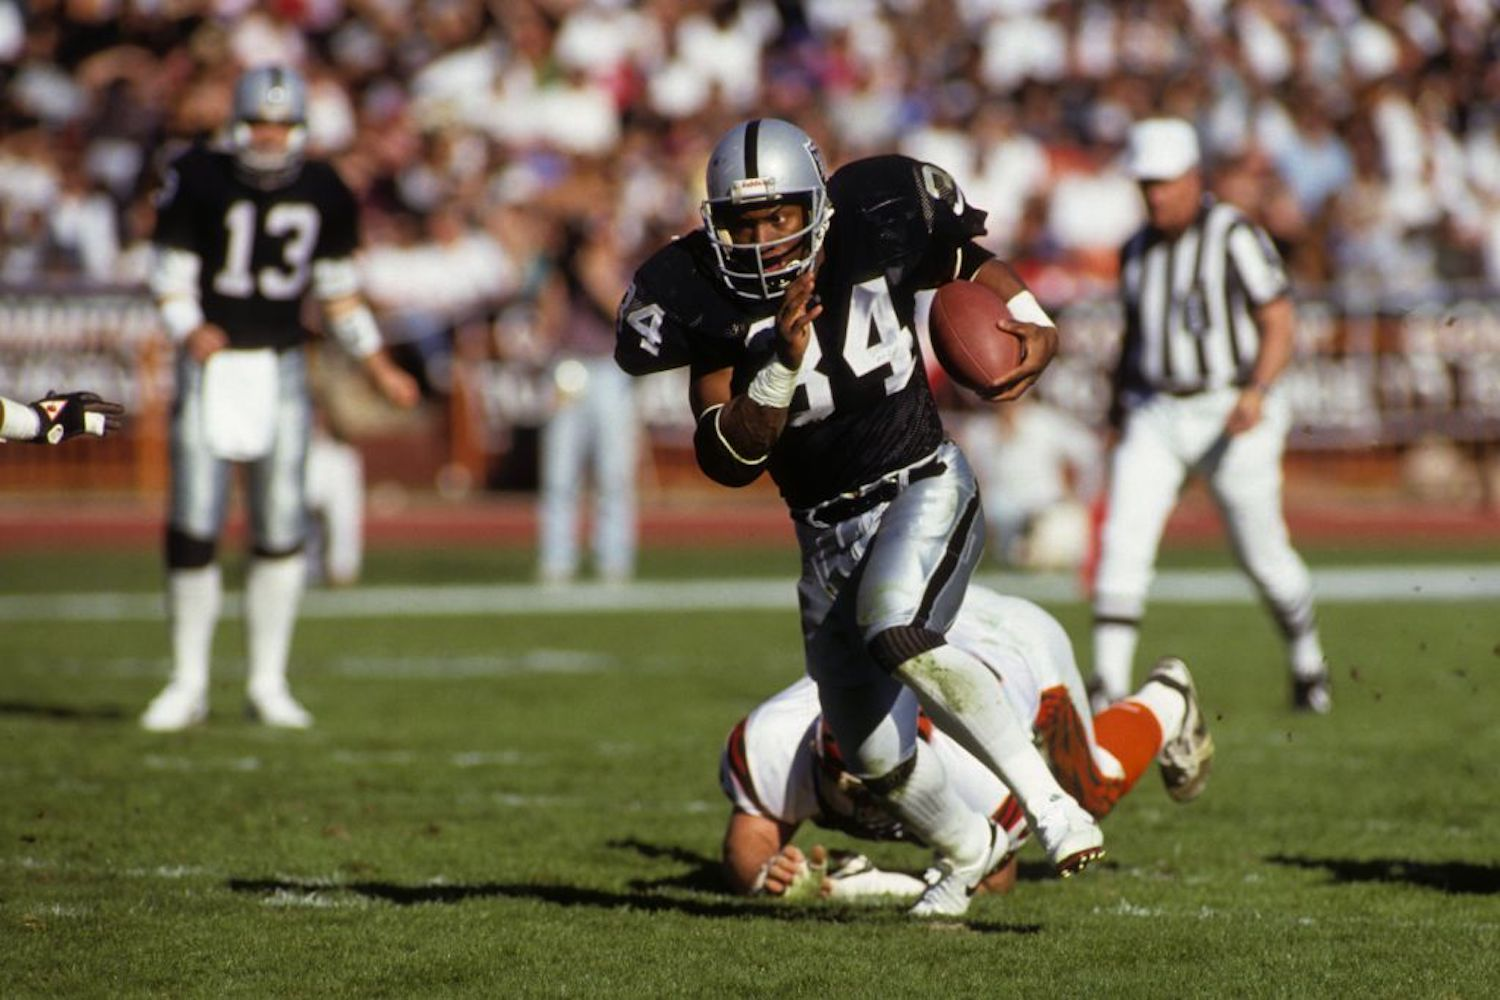 Bo Jackson was a dominant running back during his short NFL career, but he believes he would be even better in today's NFL.